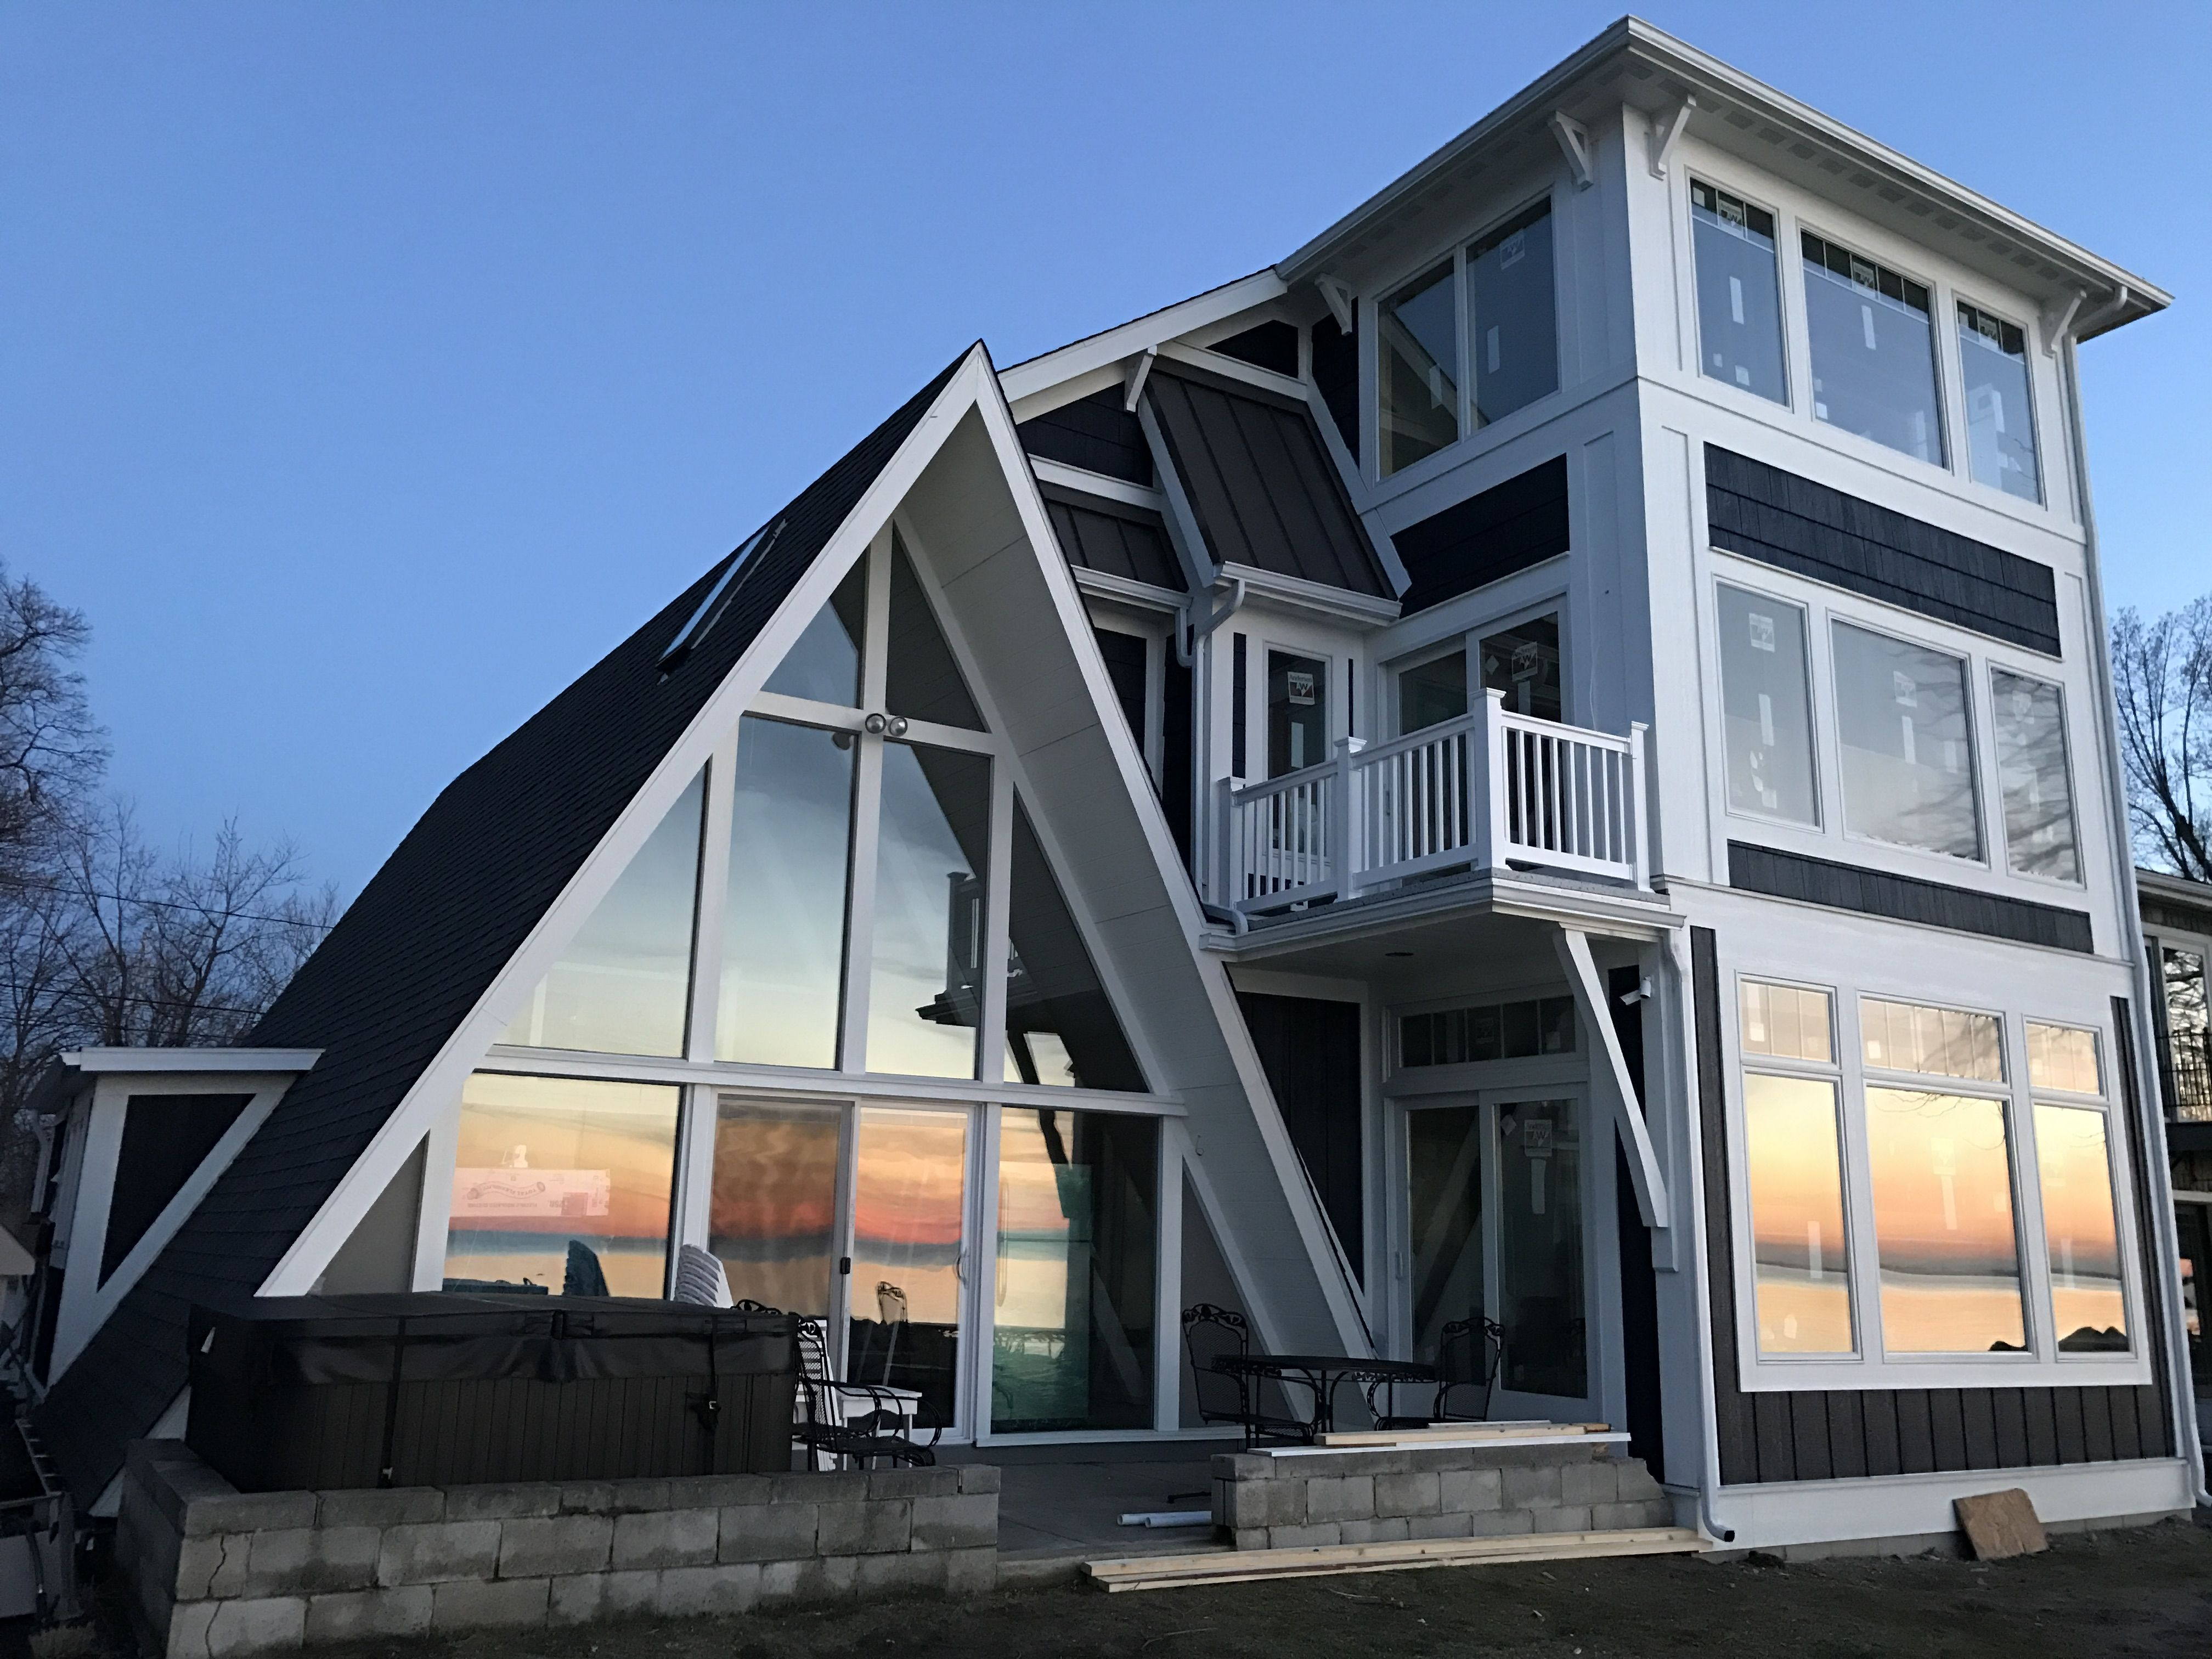 a-frame addition remodel part 2. anderson 400 series windows. lp